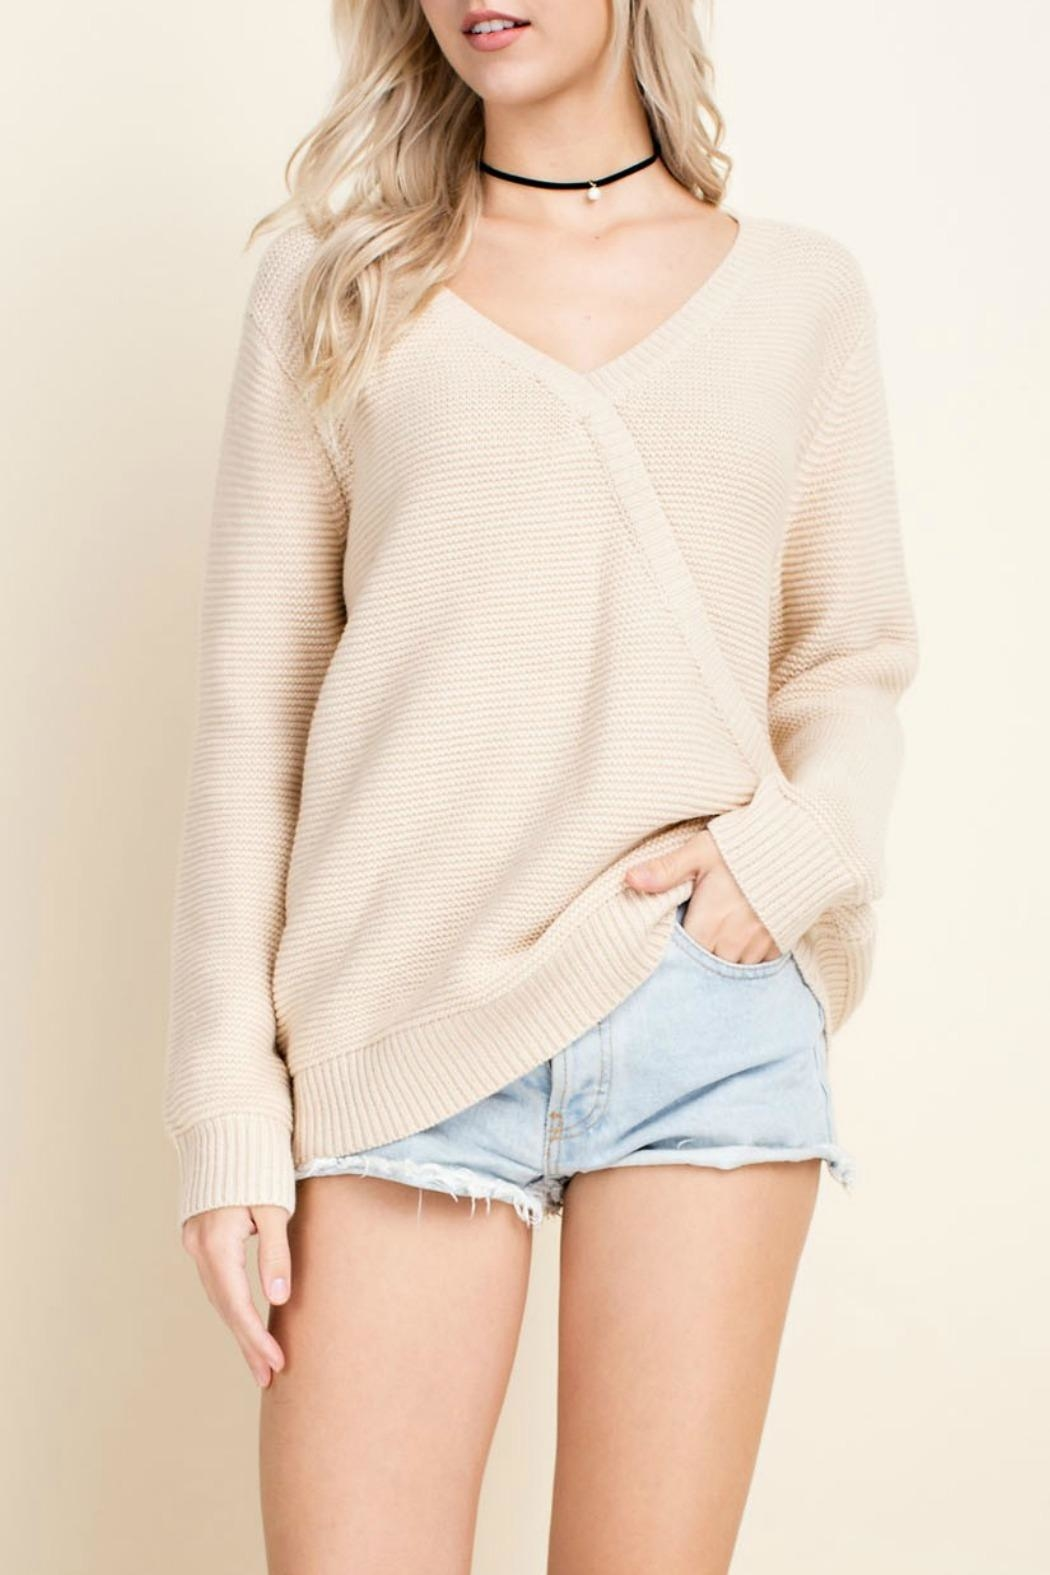 Blushing Heart Cream V-Neck Sweater - Main Image